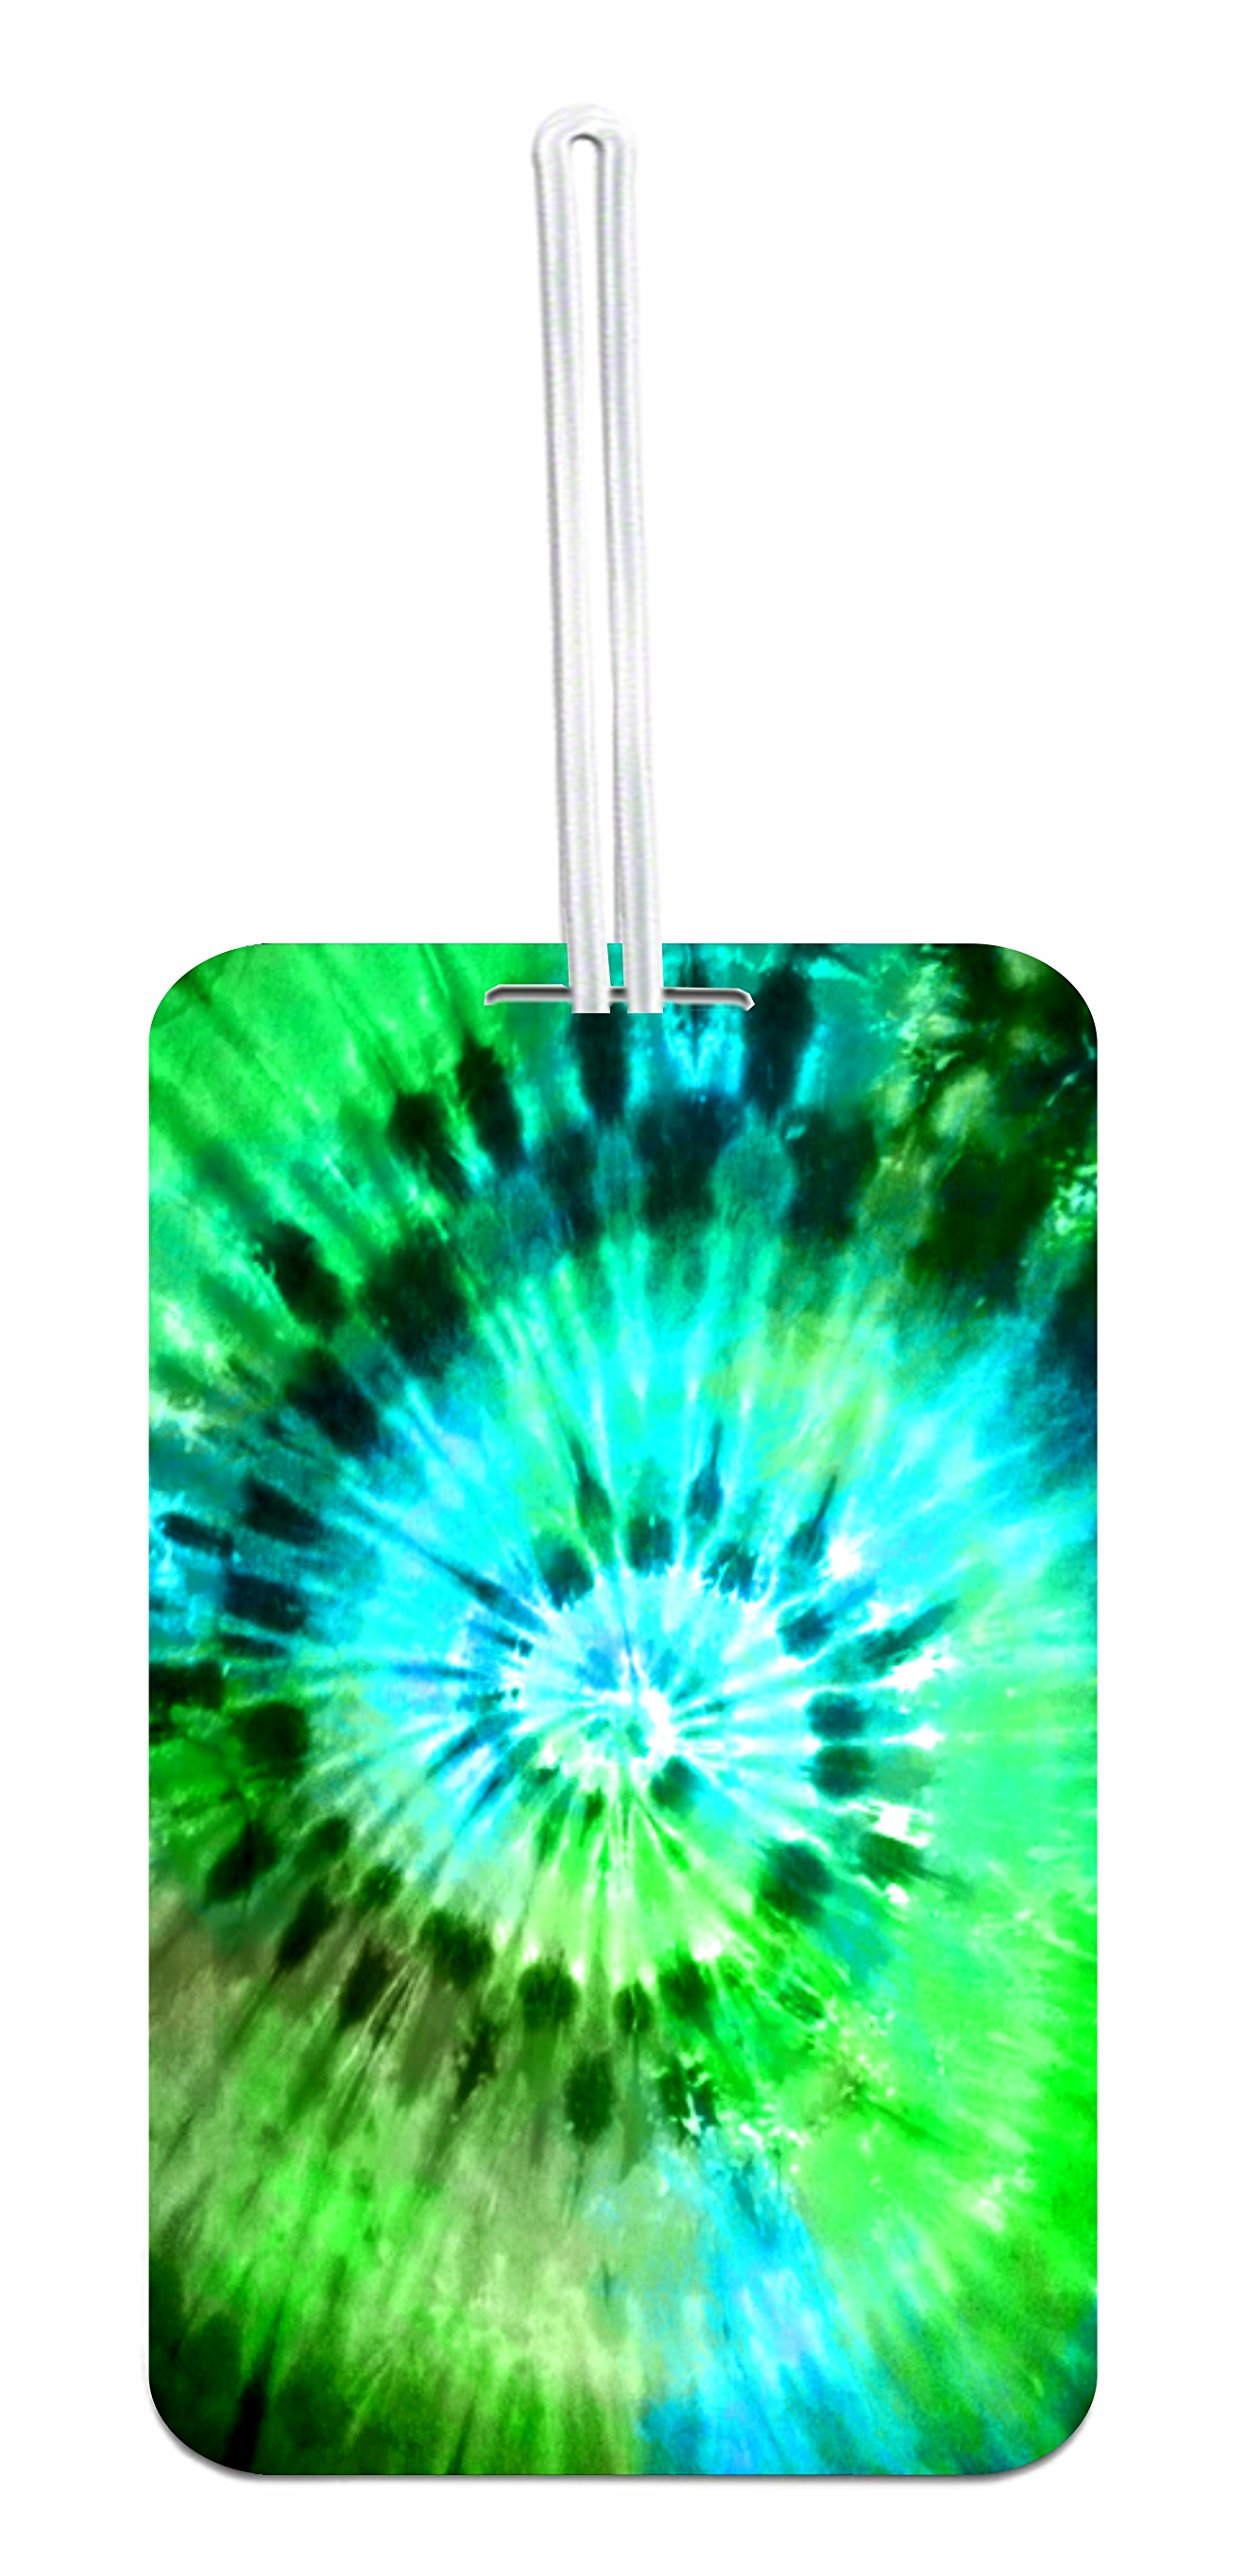 Green/Blue Tie Dye School Bag/Backpack ID Tag with Custom Back by Jacks Outlet (Image #1)